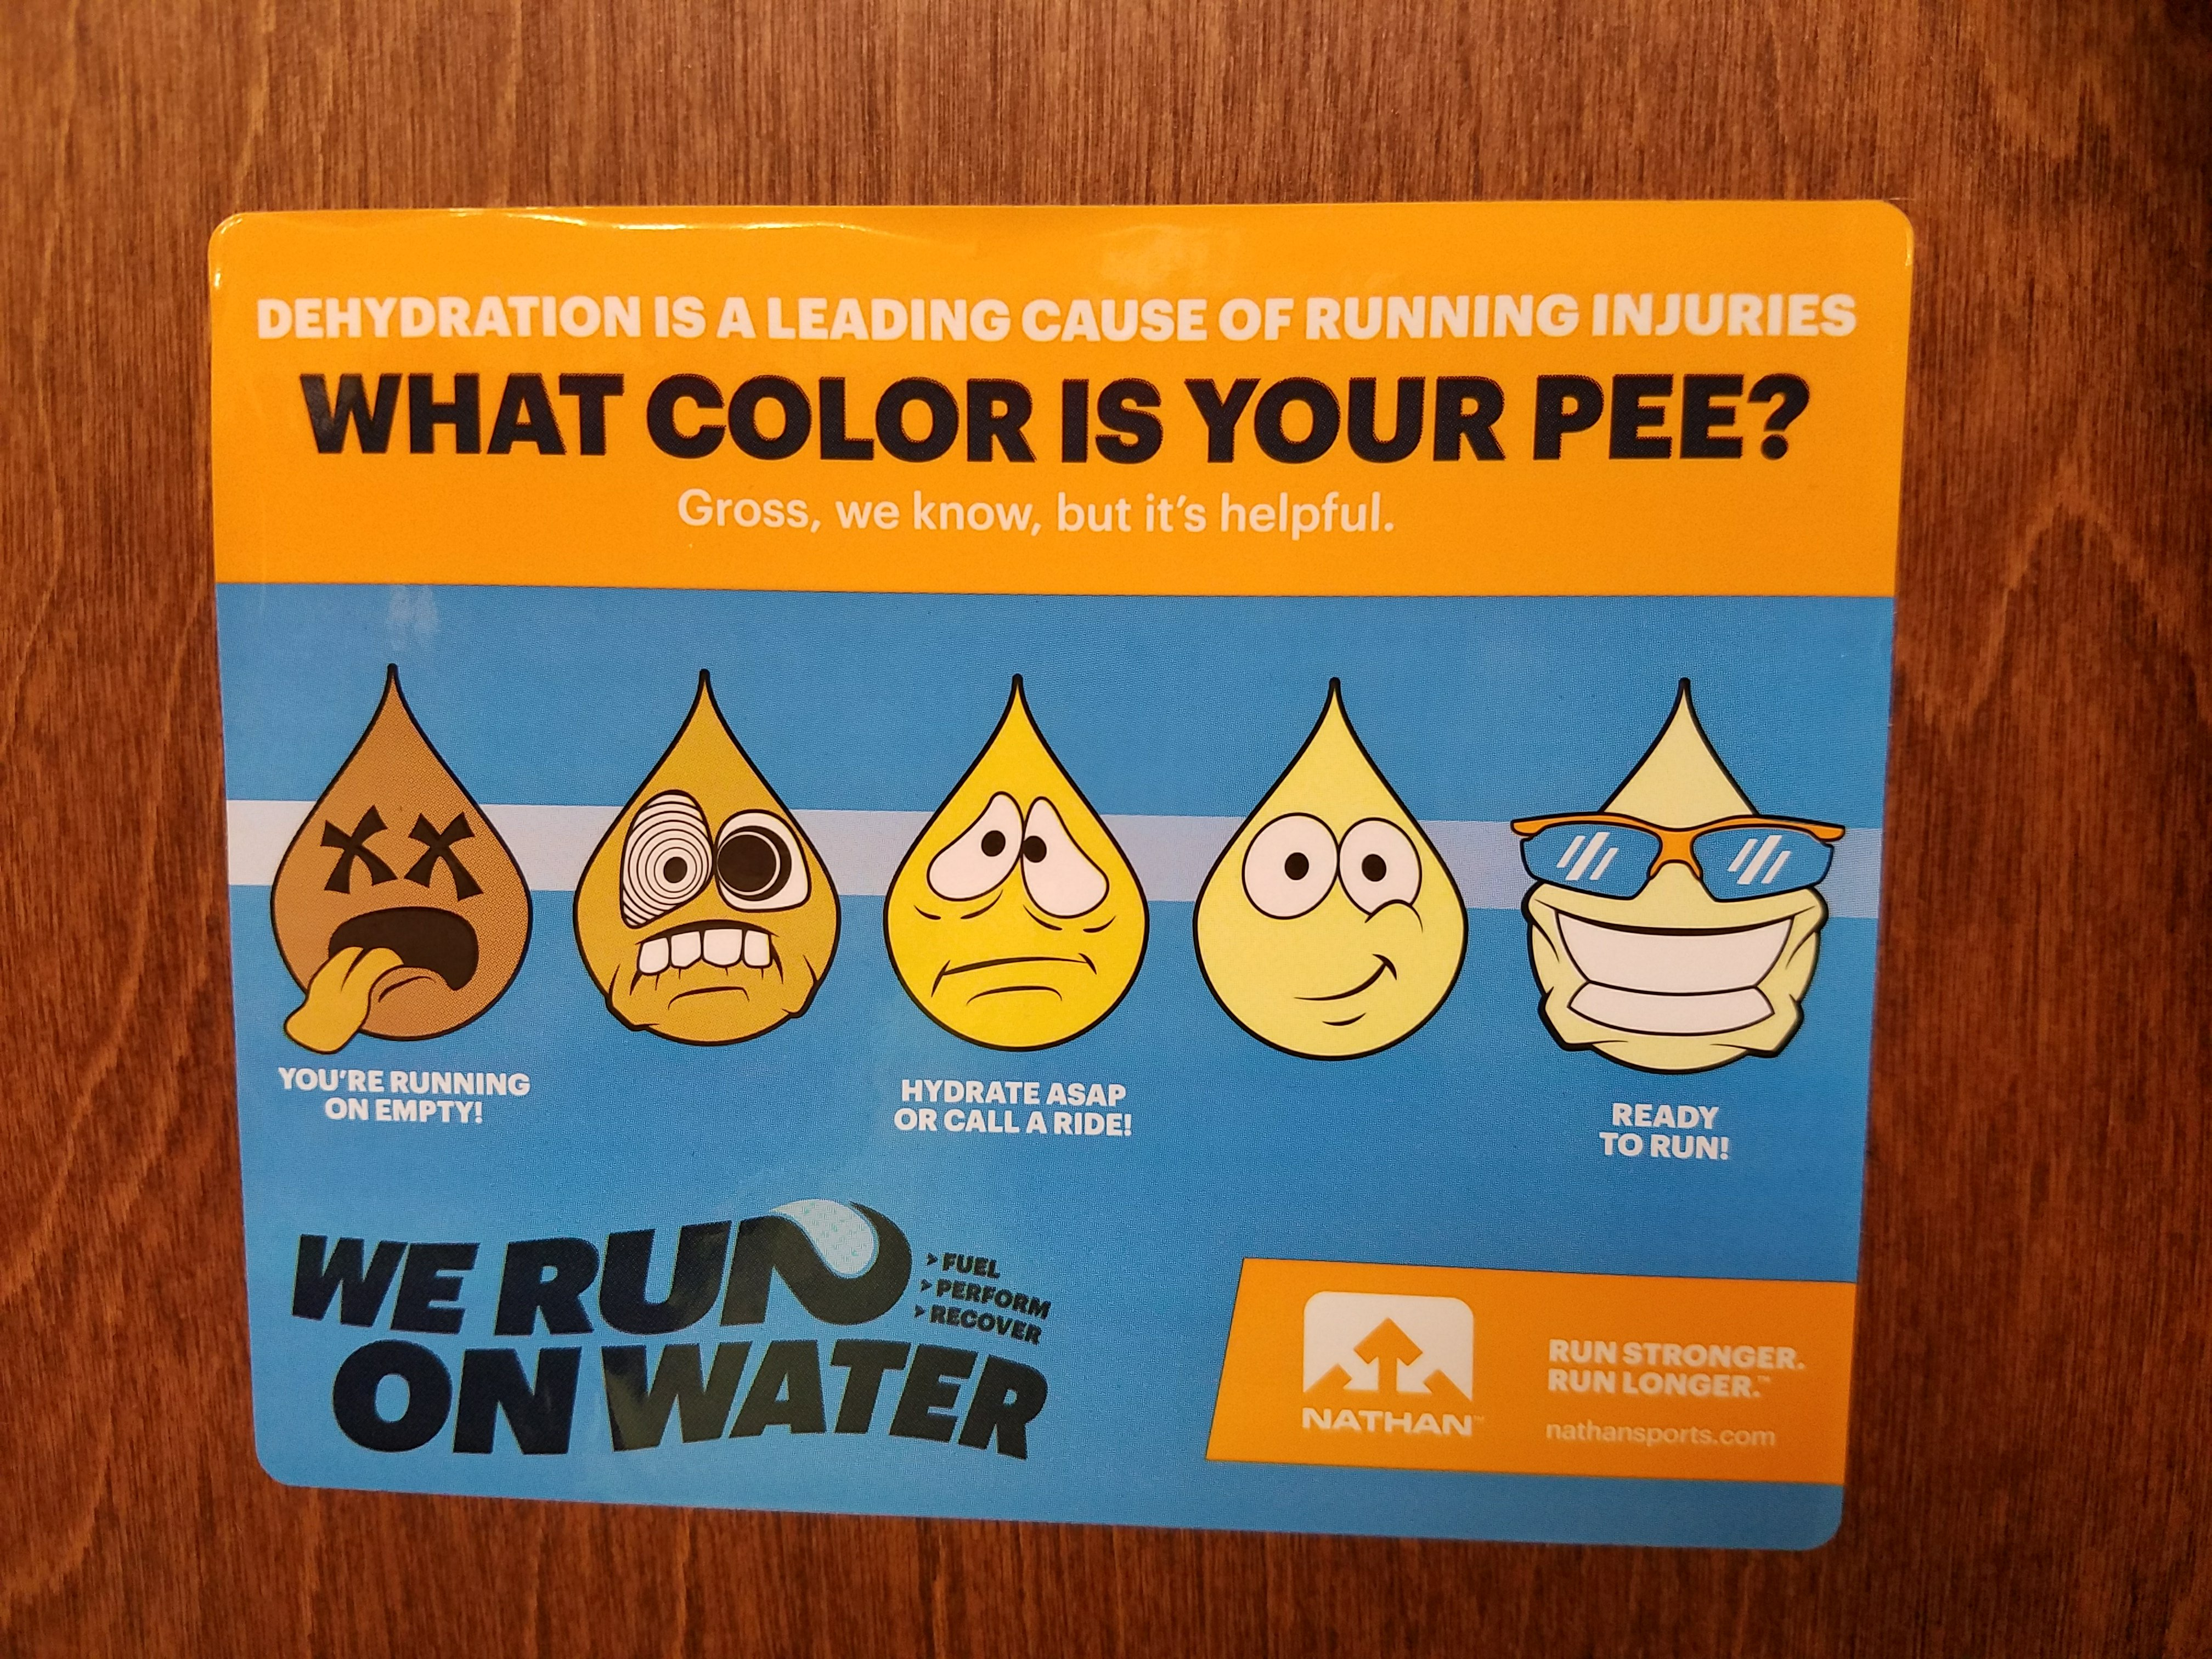 what color is your pee943727832.